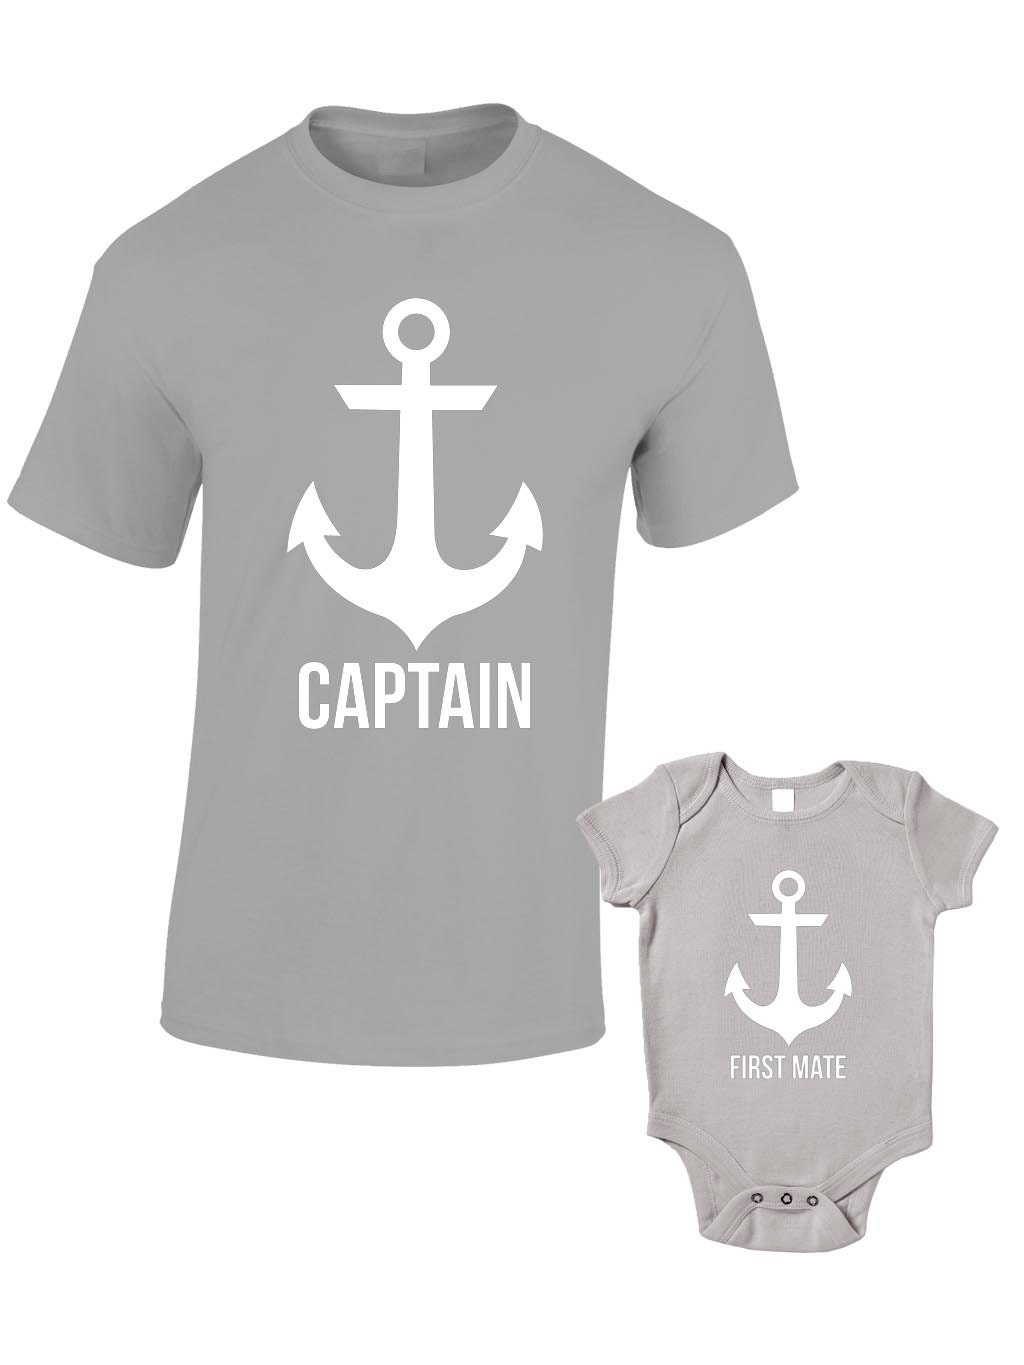 captain and first mate t shirts or baby grow matching father. Black Bedroom Furniture Sets. Home Design Ideas